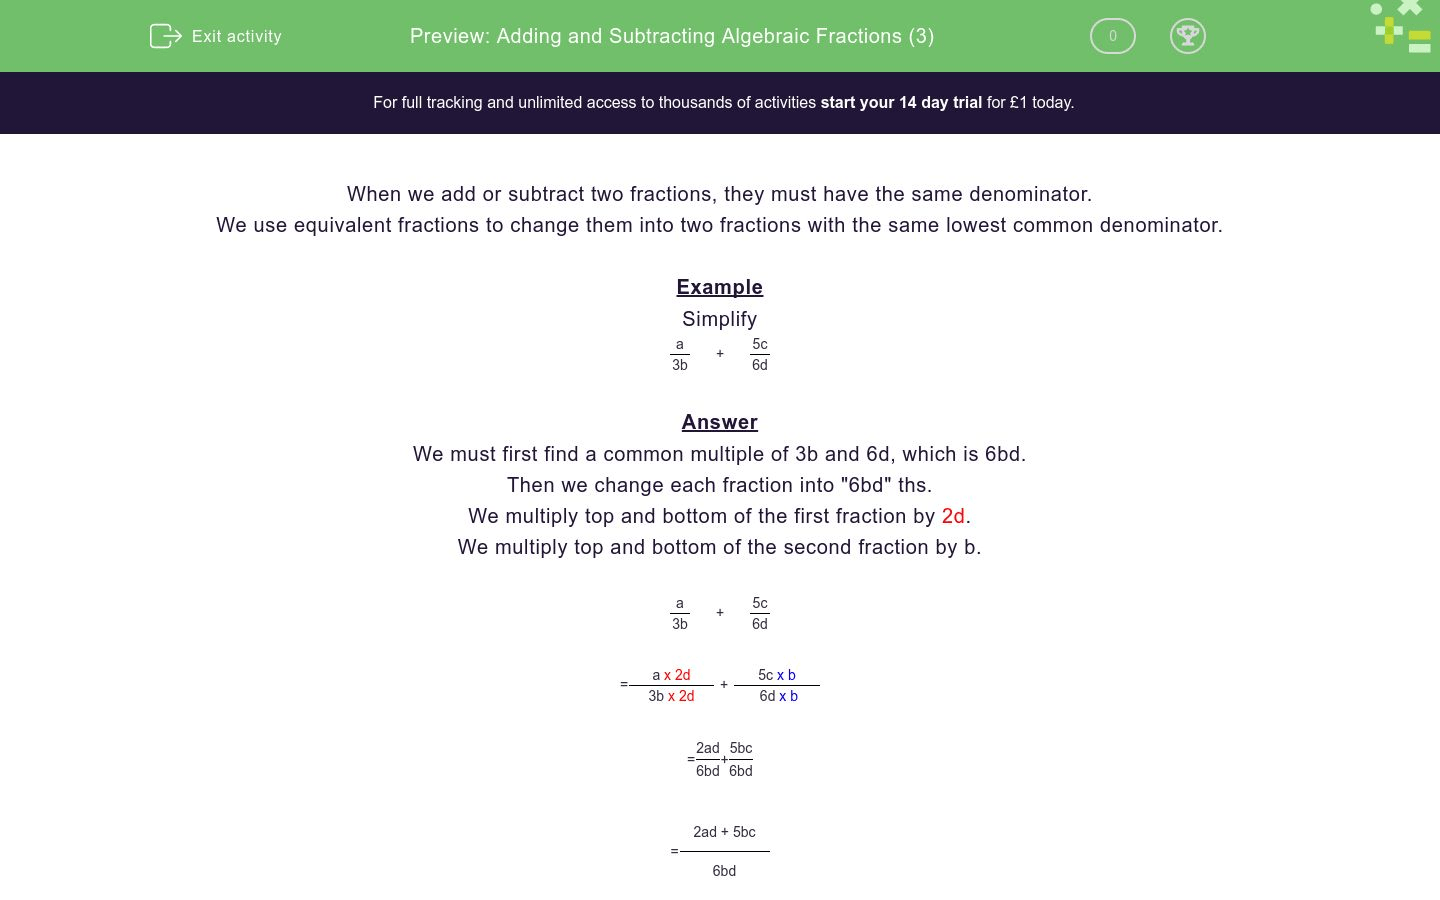 Adding And Subtracting Algebraic Fractions 3 Worksheet